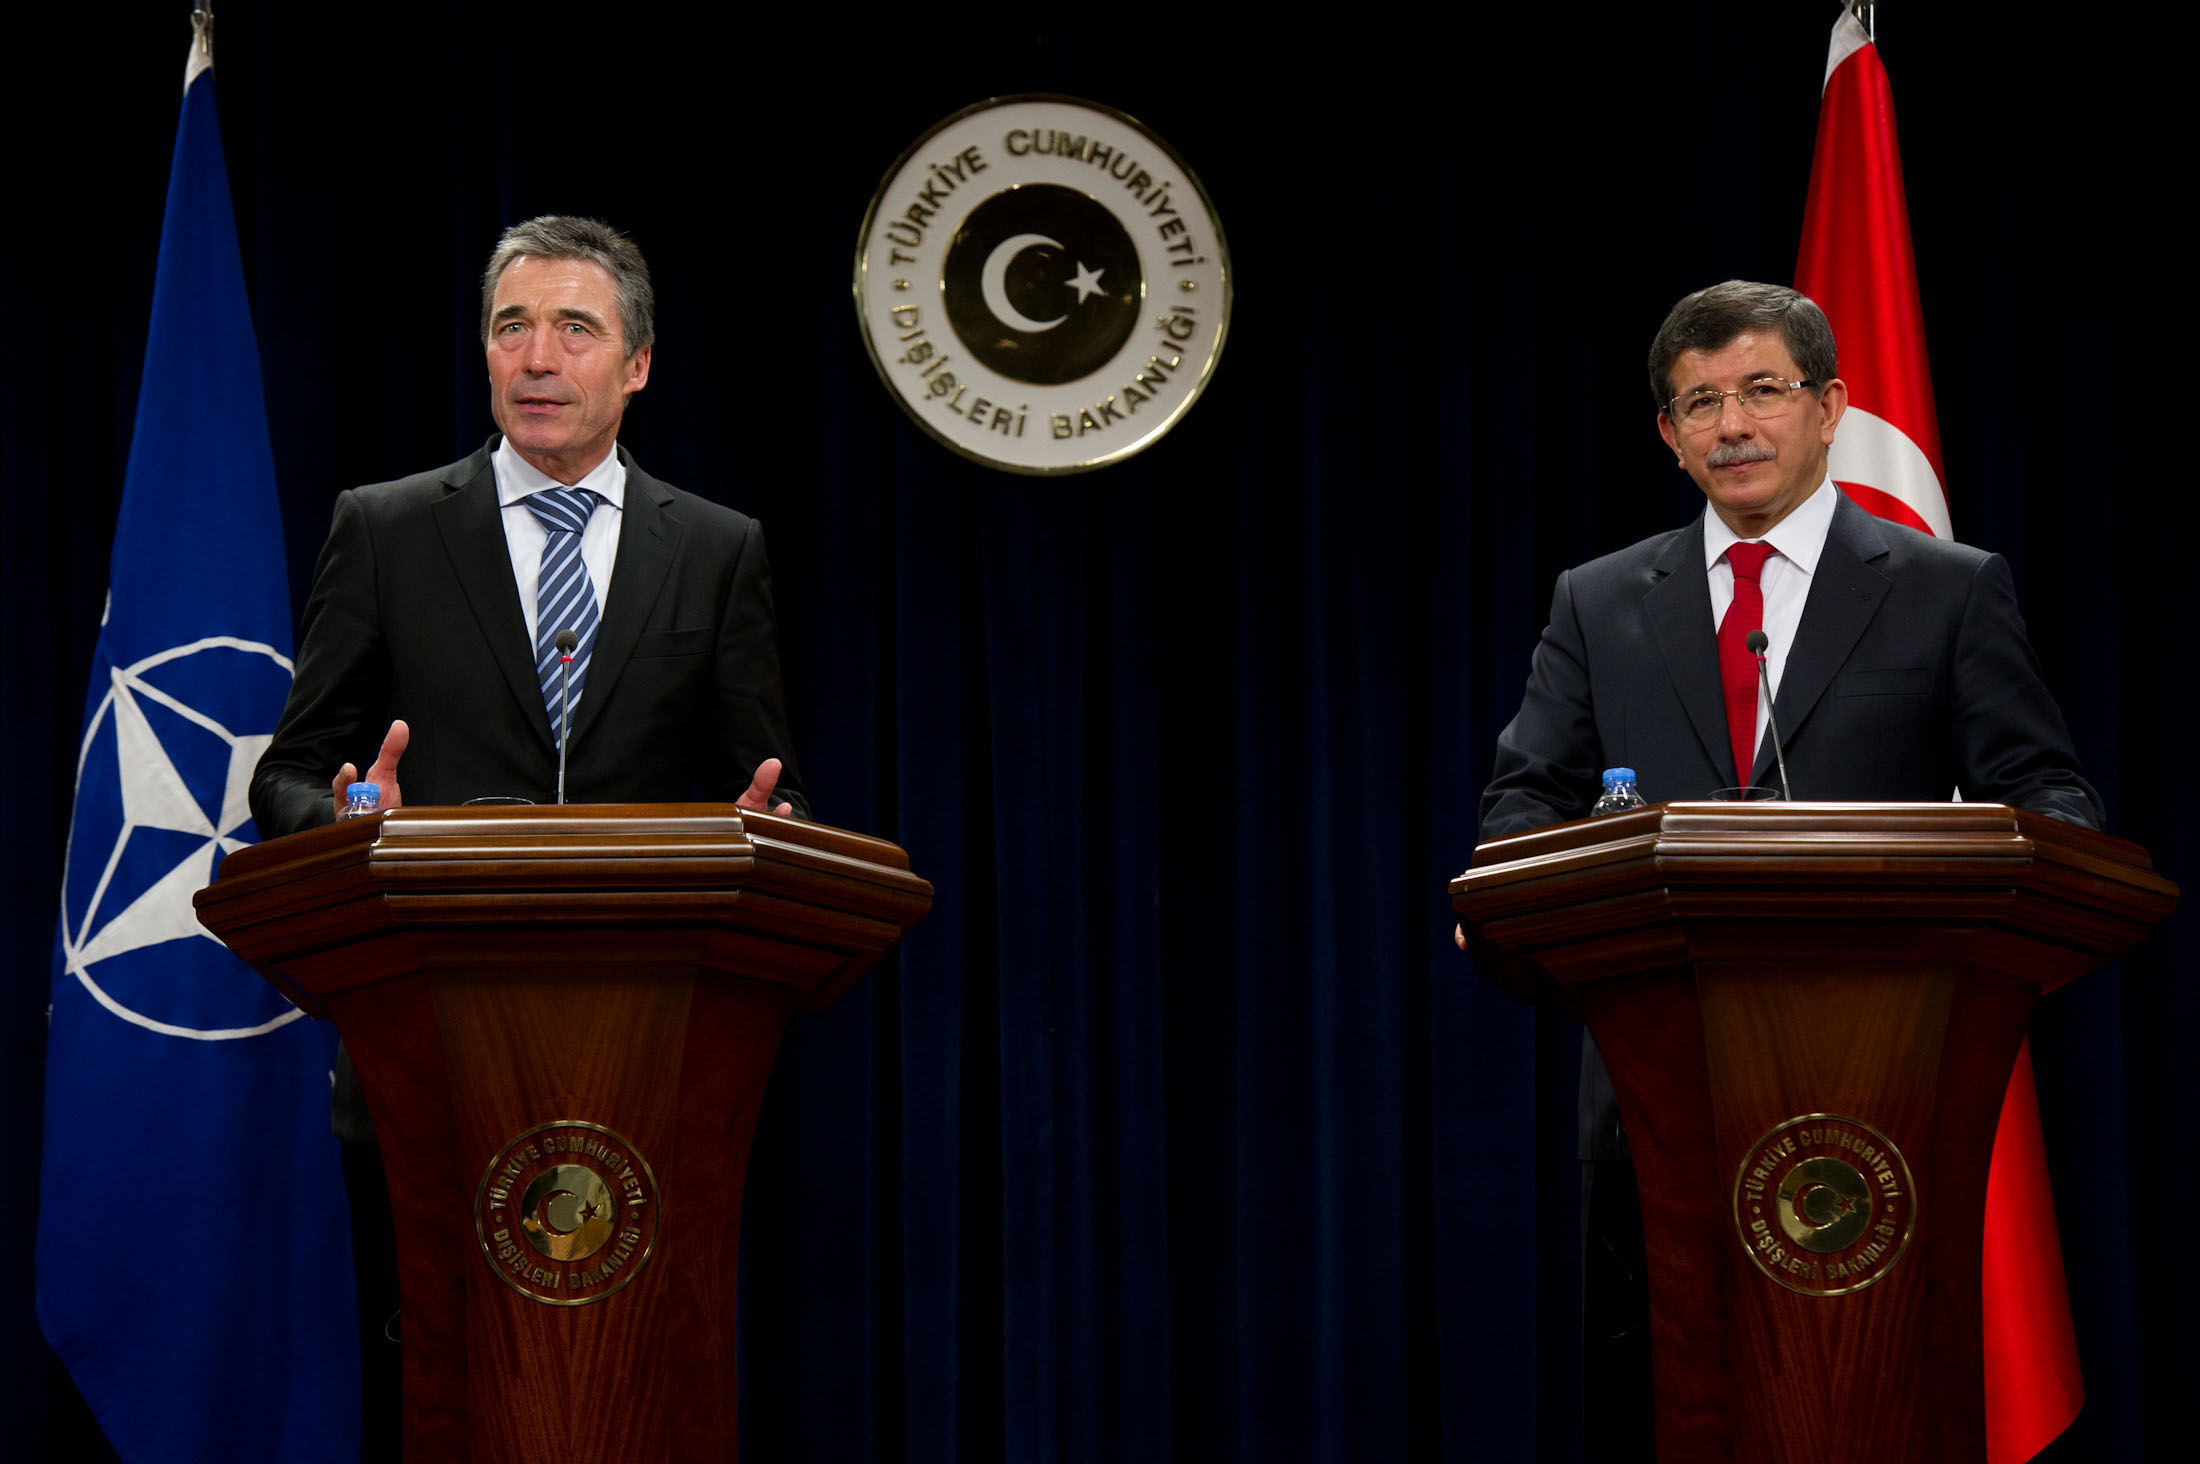 NATO Secretary General visits Turkey on the occasion of the 60th anniversary of the accession of Turkey to NATO